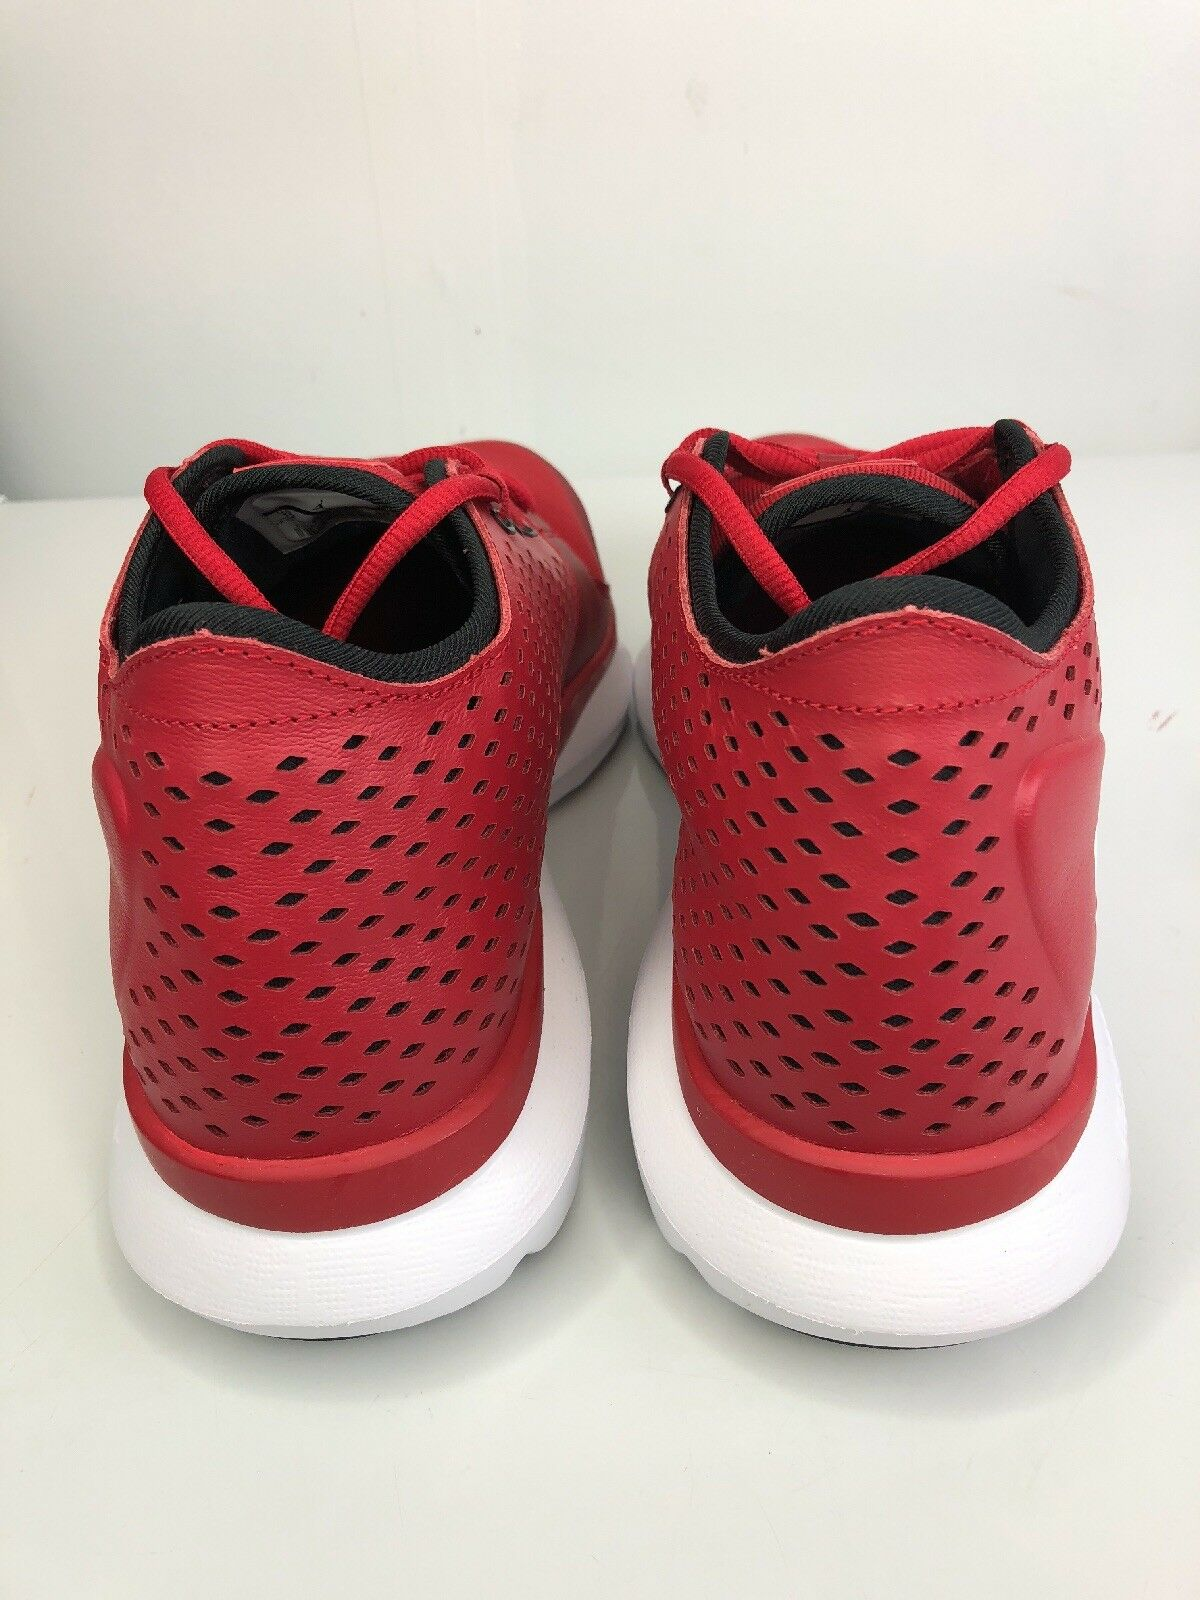 promo code 6a6df 0064a ... Men s 12  12  12  NIKE Red Air Jordan Flow Training Shoes   833969 ...